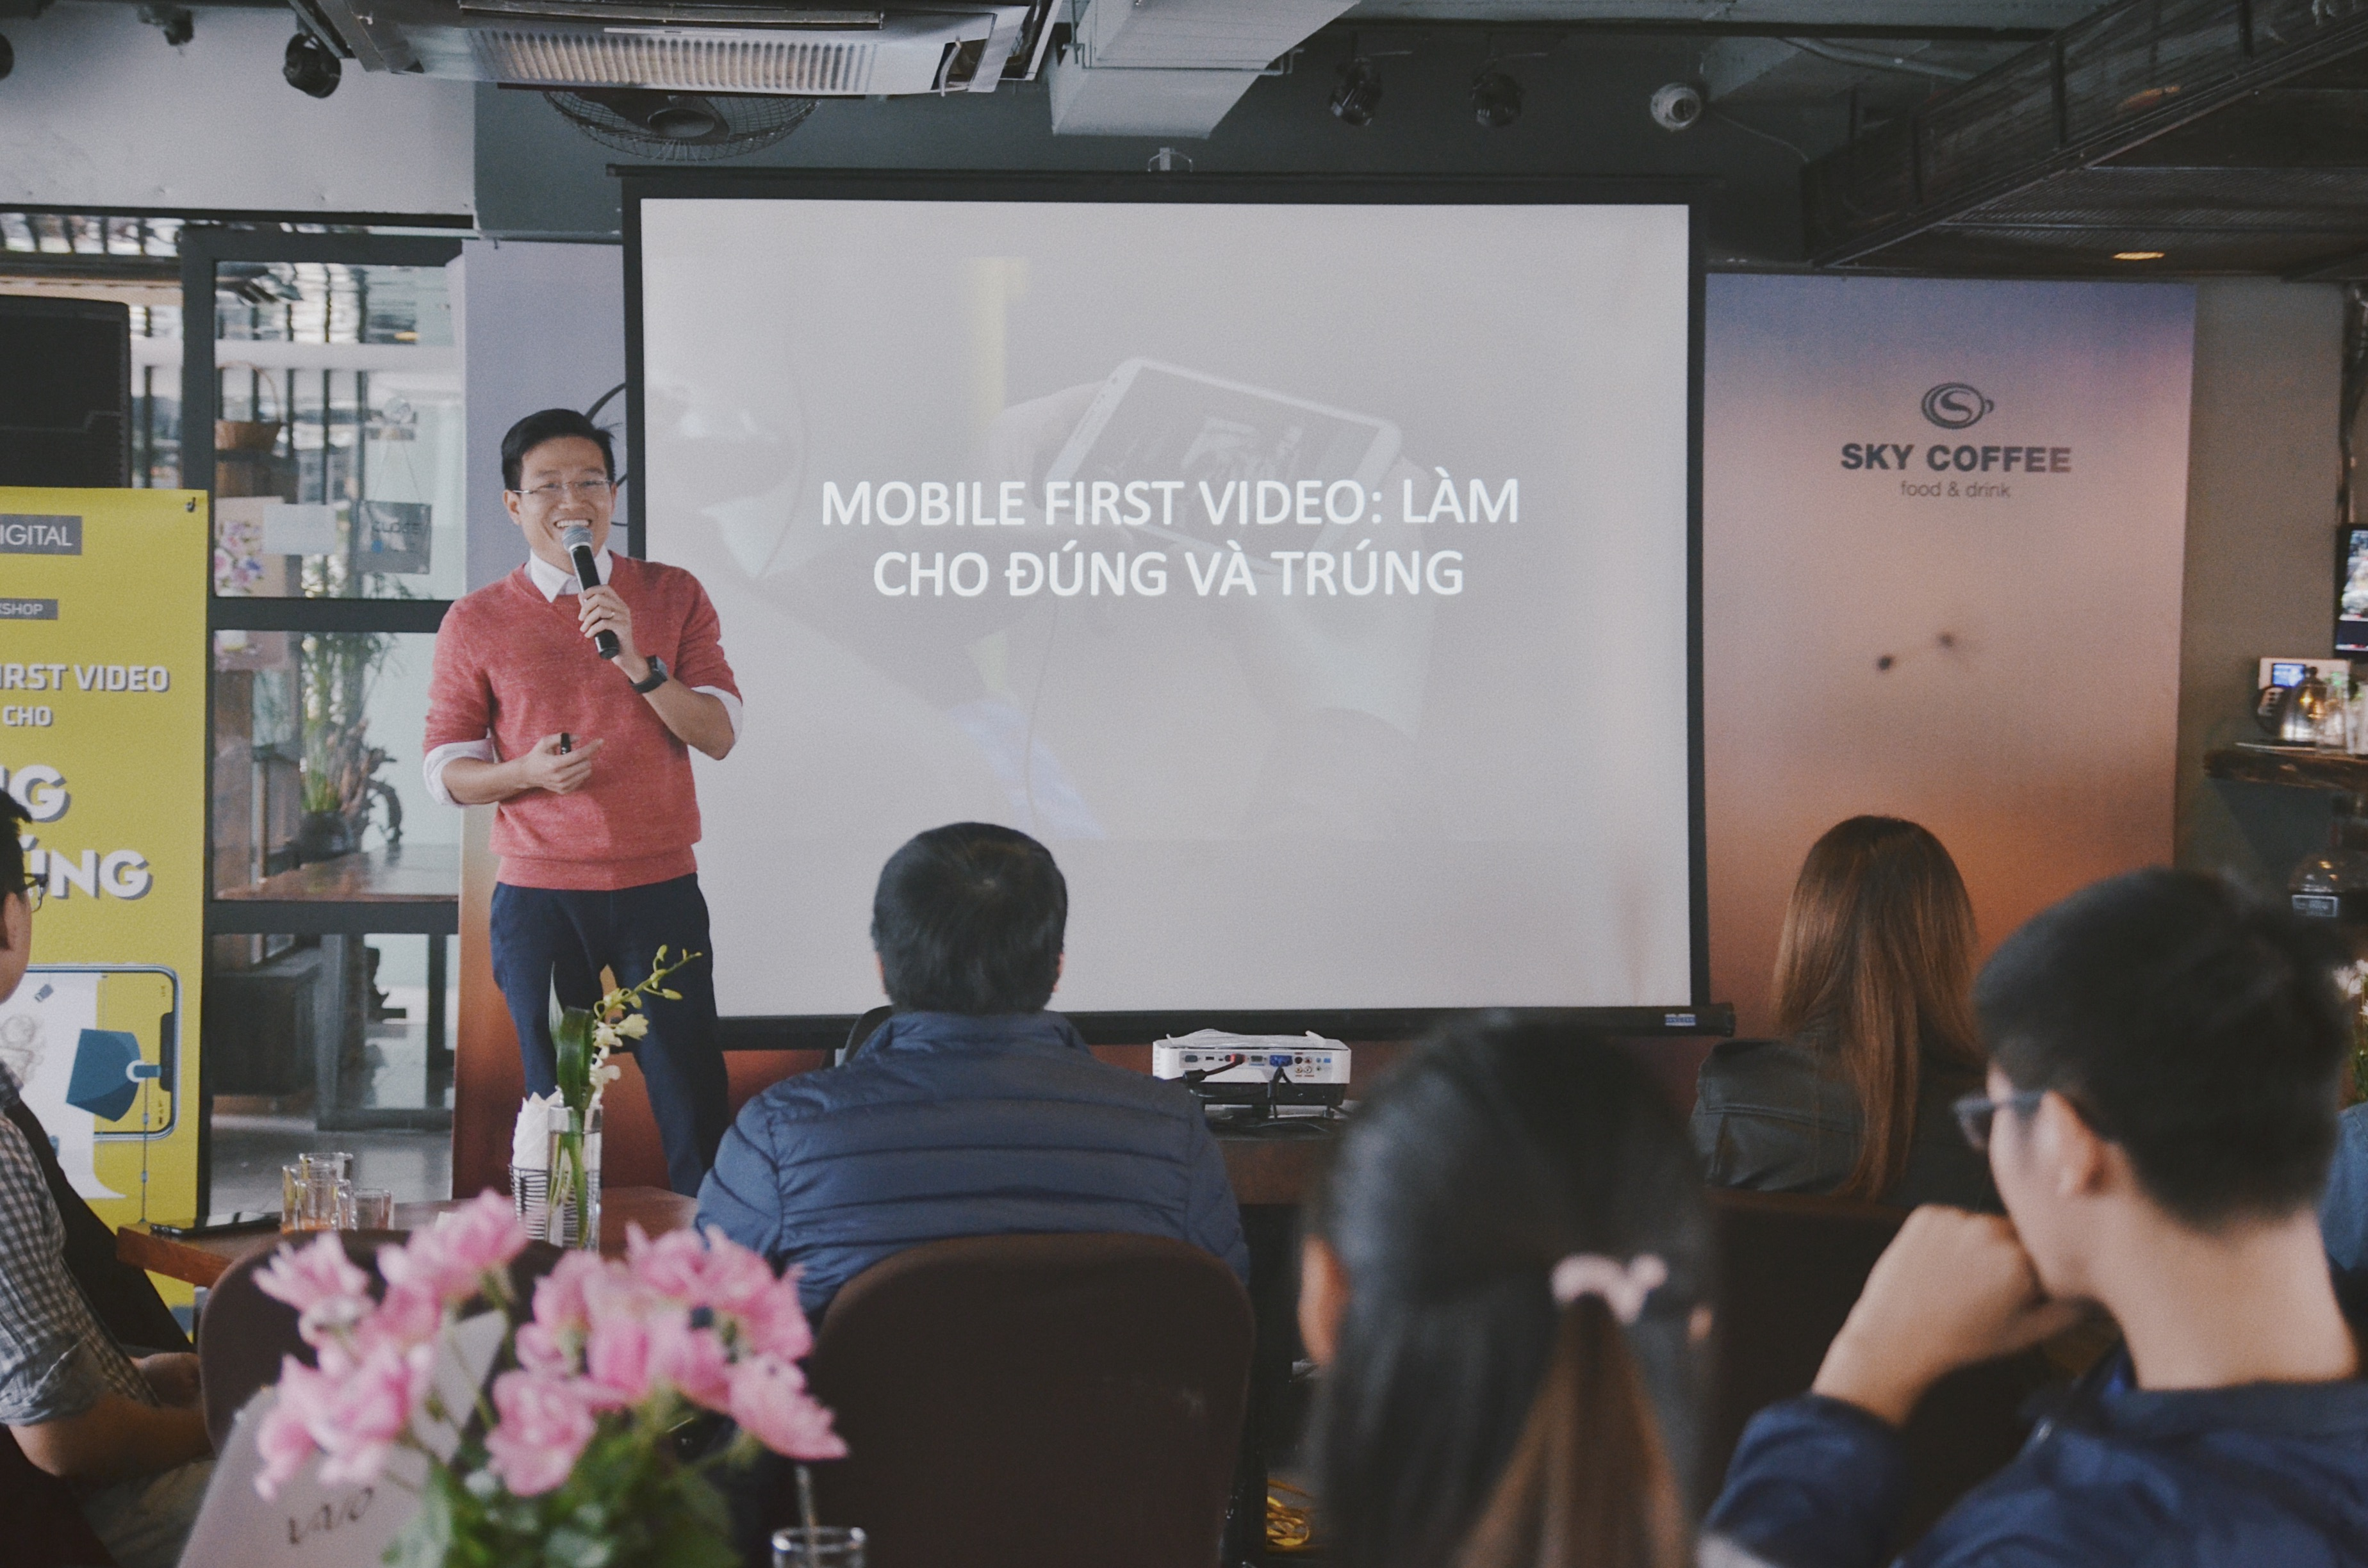 Workshop: Mobile-First Video – DO RIGHT, DO WISE